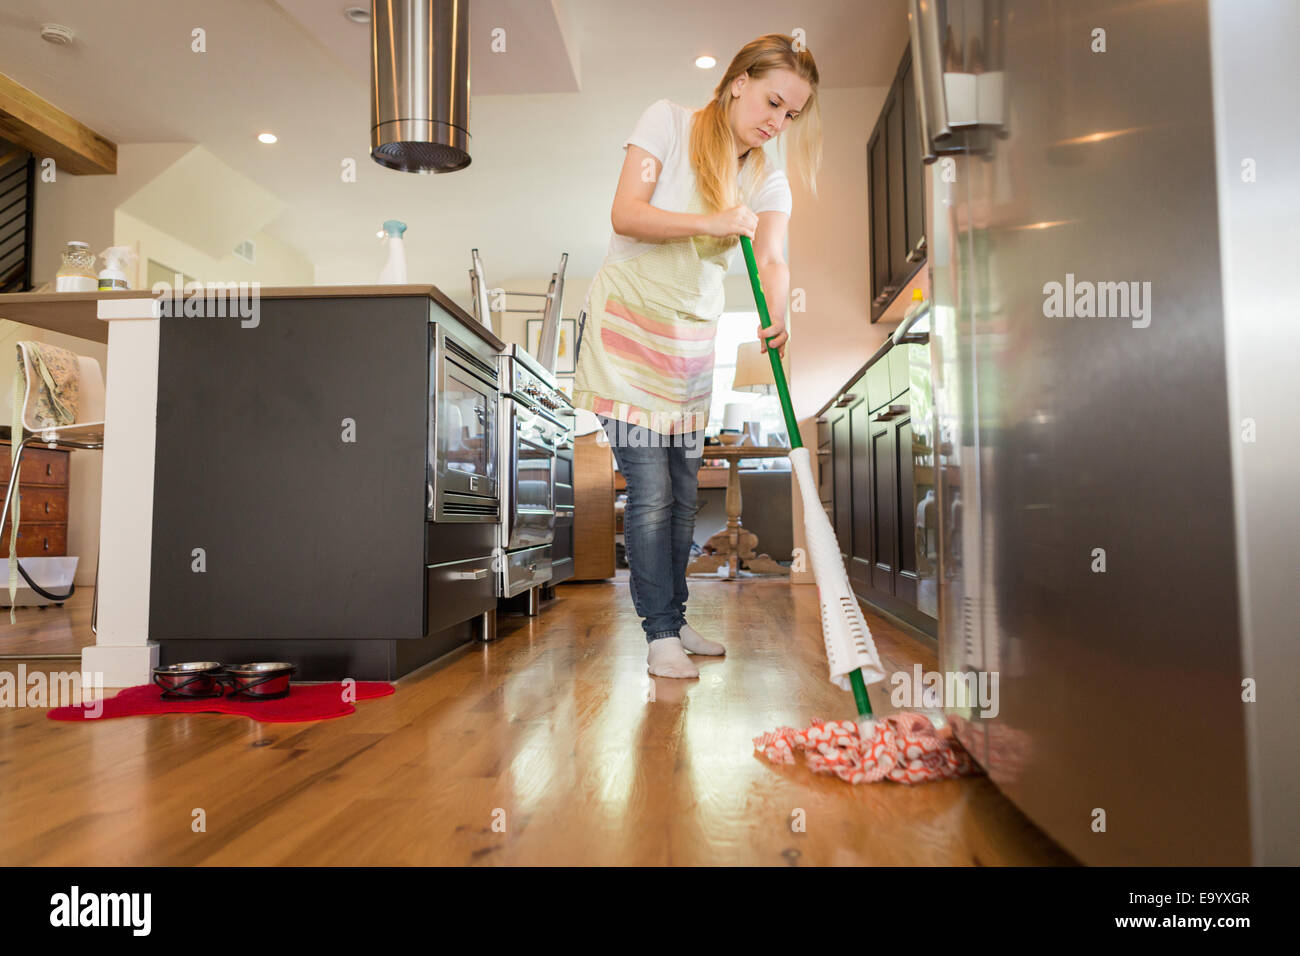 Mopping Floor Stock Photos Amp Mopping Floor Stock Images